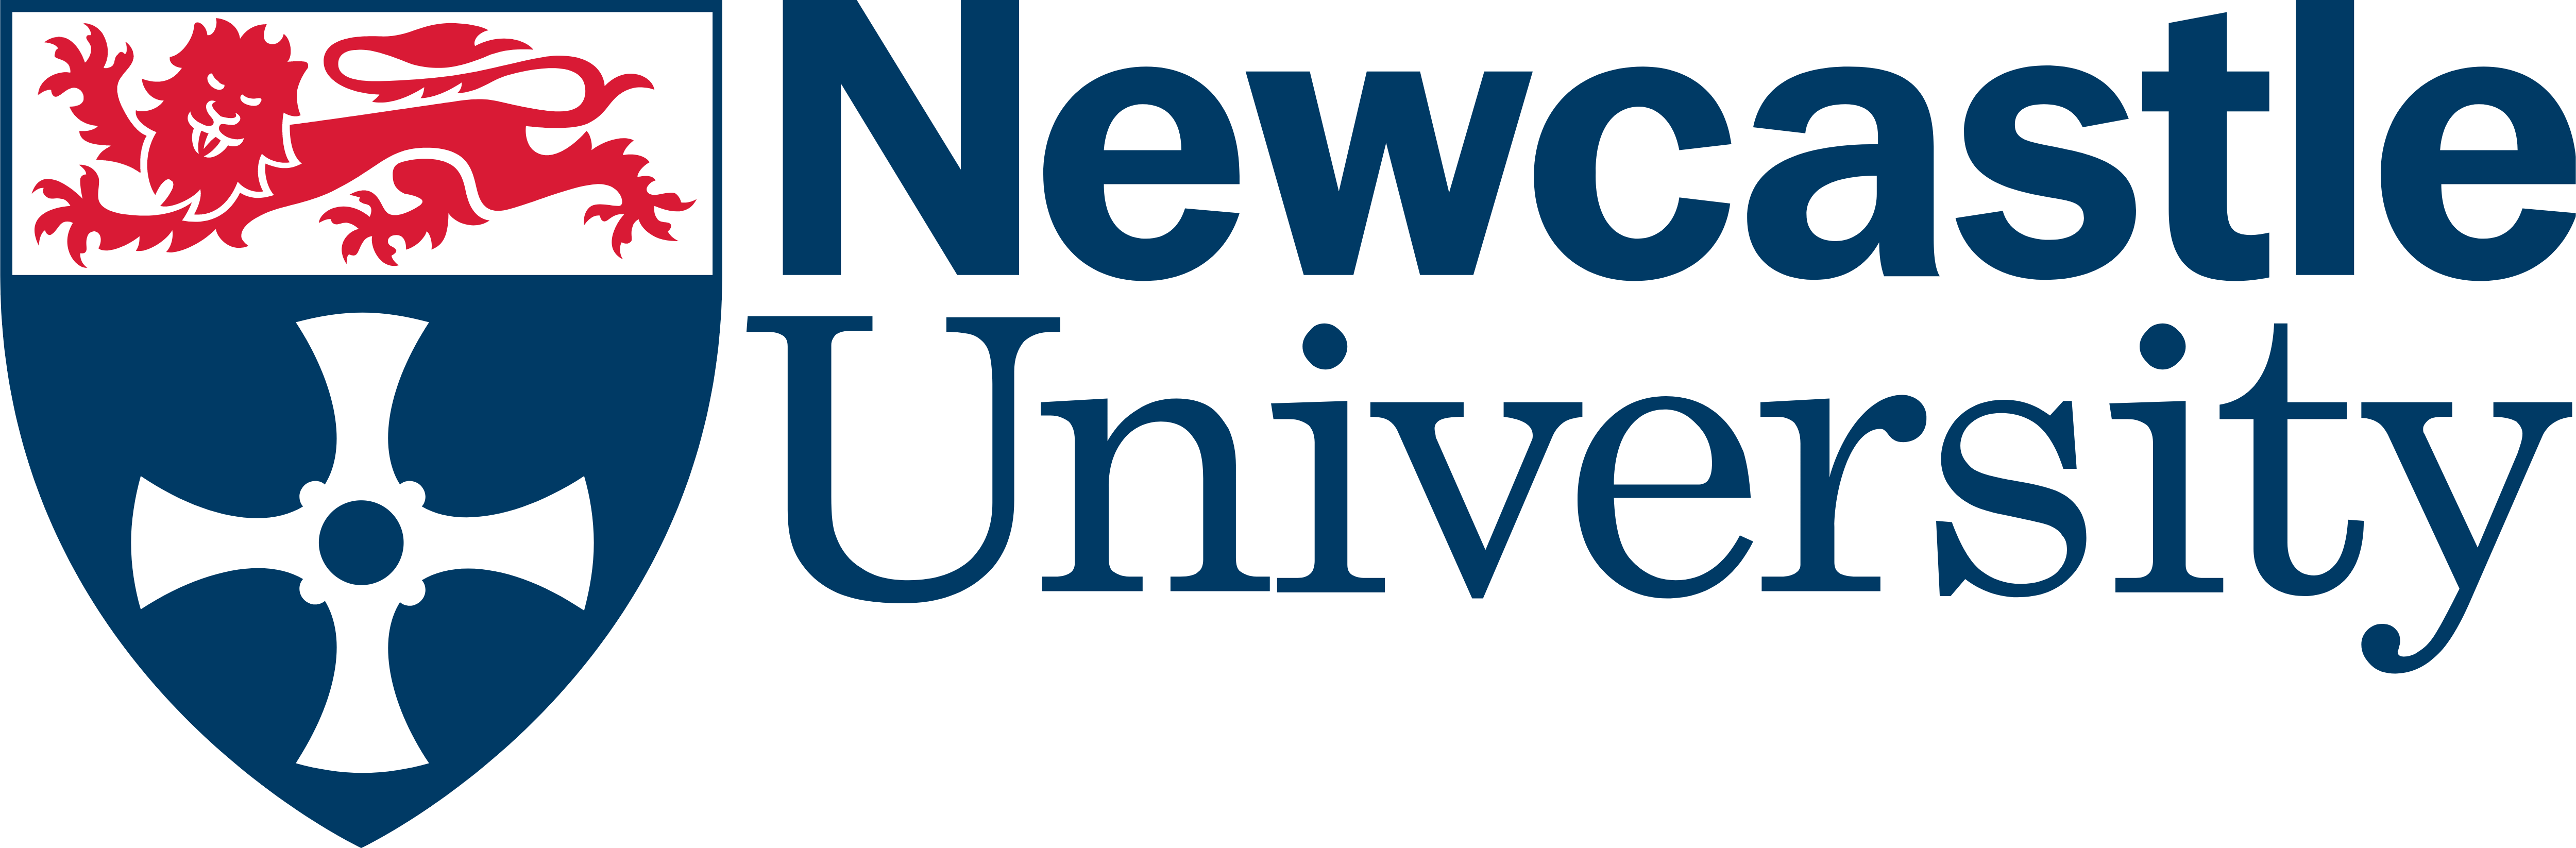 Newcastle University – Logos Download